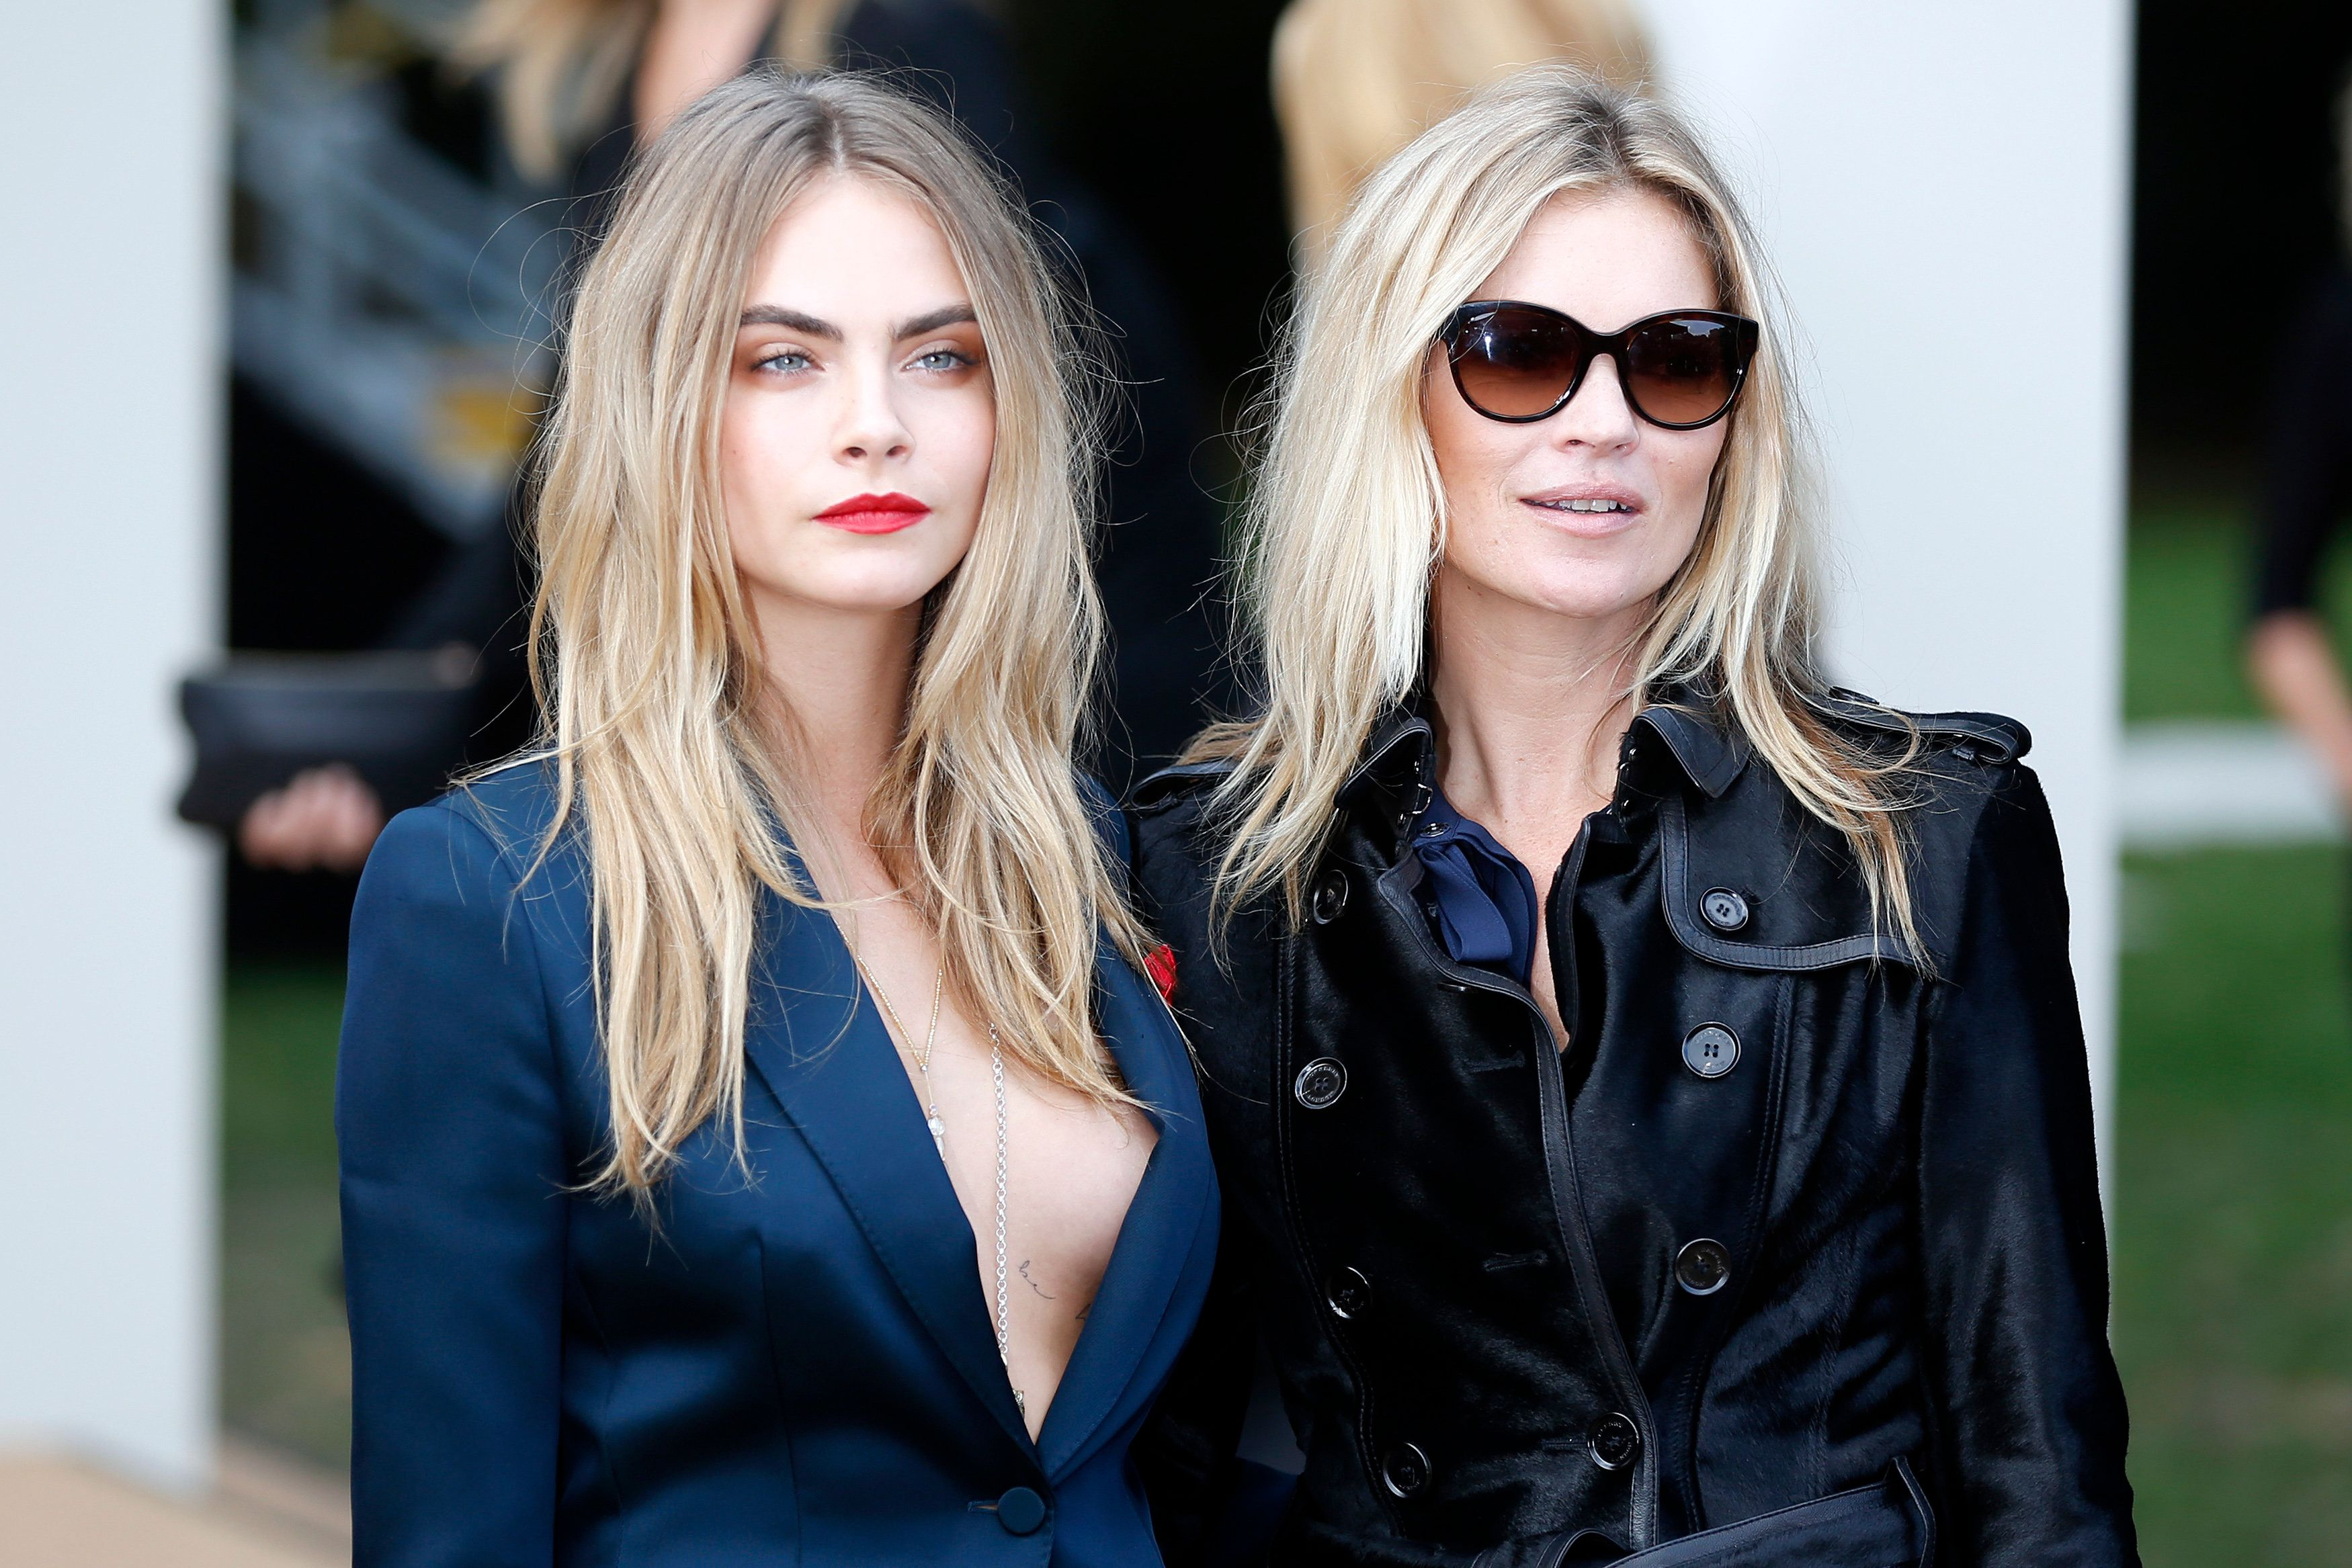 Models Cara Delevingne (L) and Kate Moss arrive to attend the presentation of the Burberry Spring/Summer 2015 collection during London Fashion Week September 15, 2014. REUTERS/Stefan Wermuth (BRITAIN - Tags: FASHION ENTERTAINMENT)